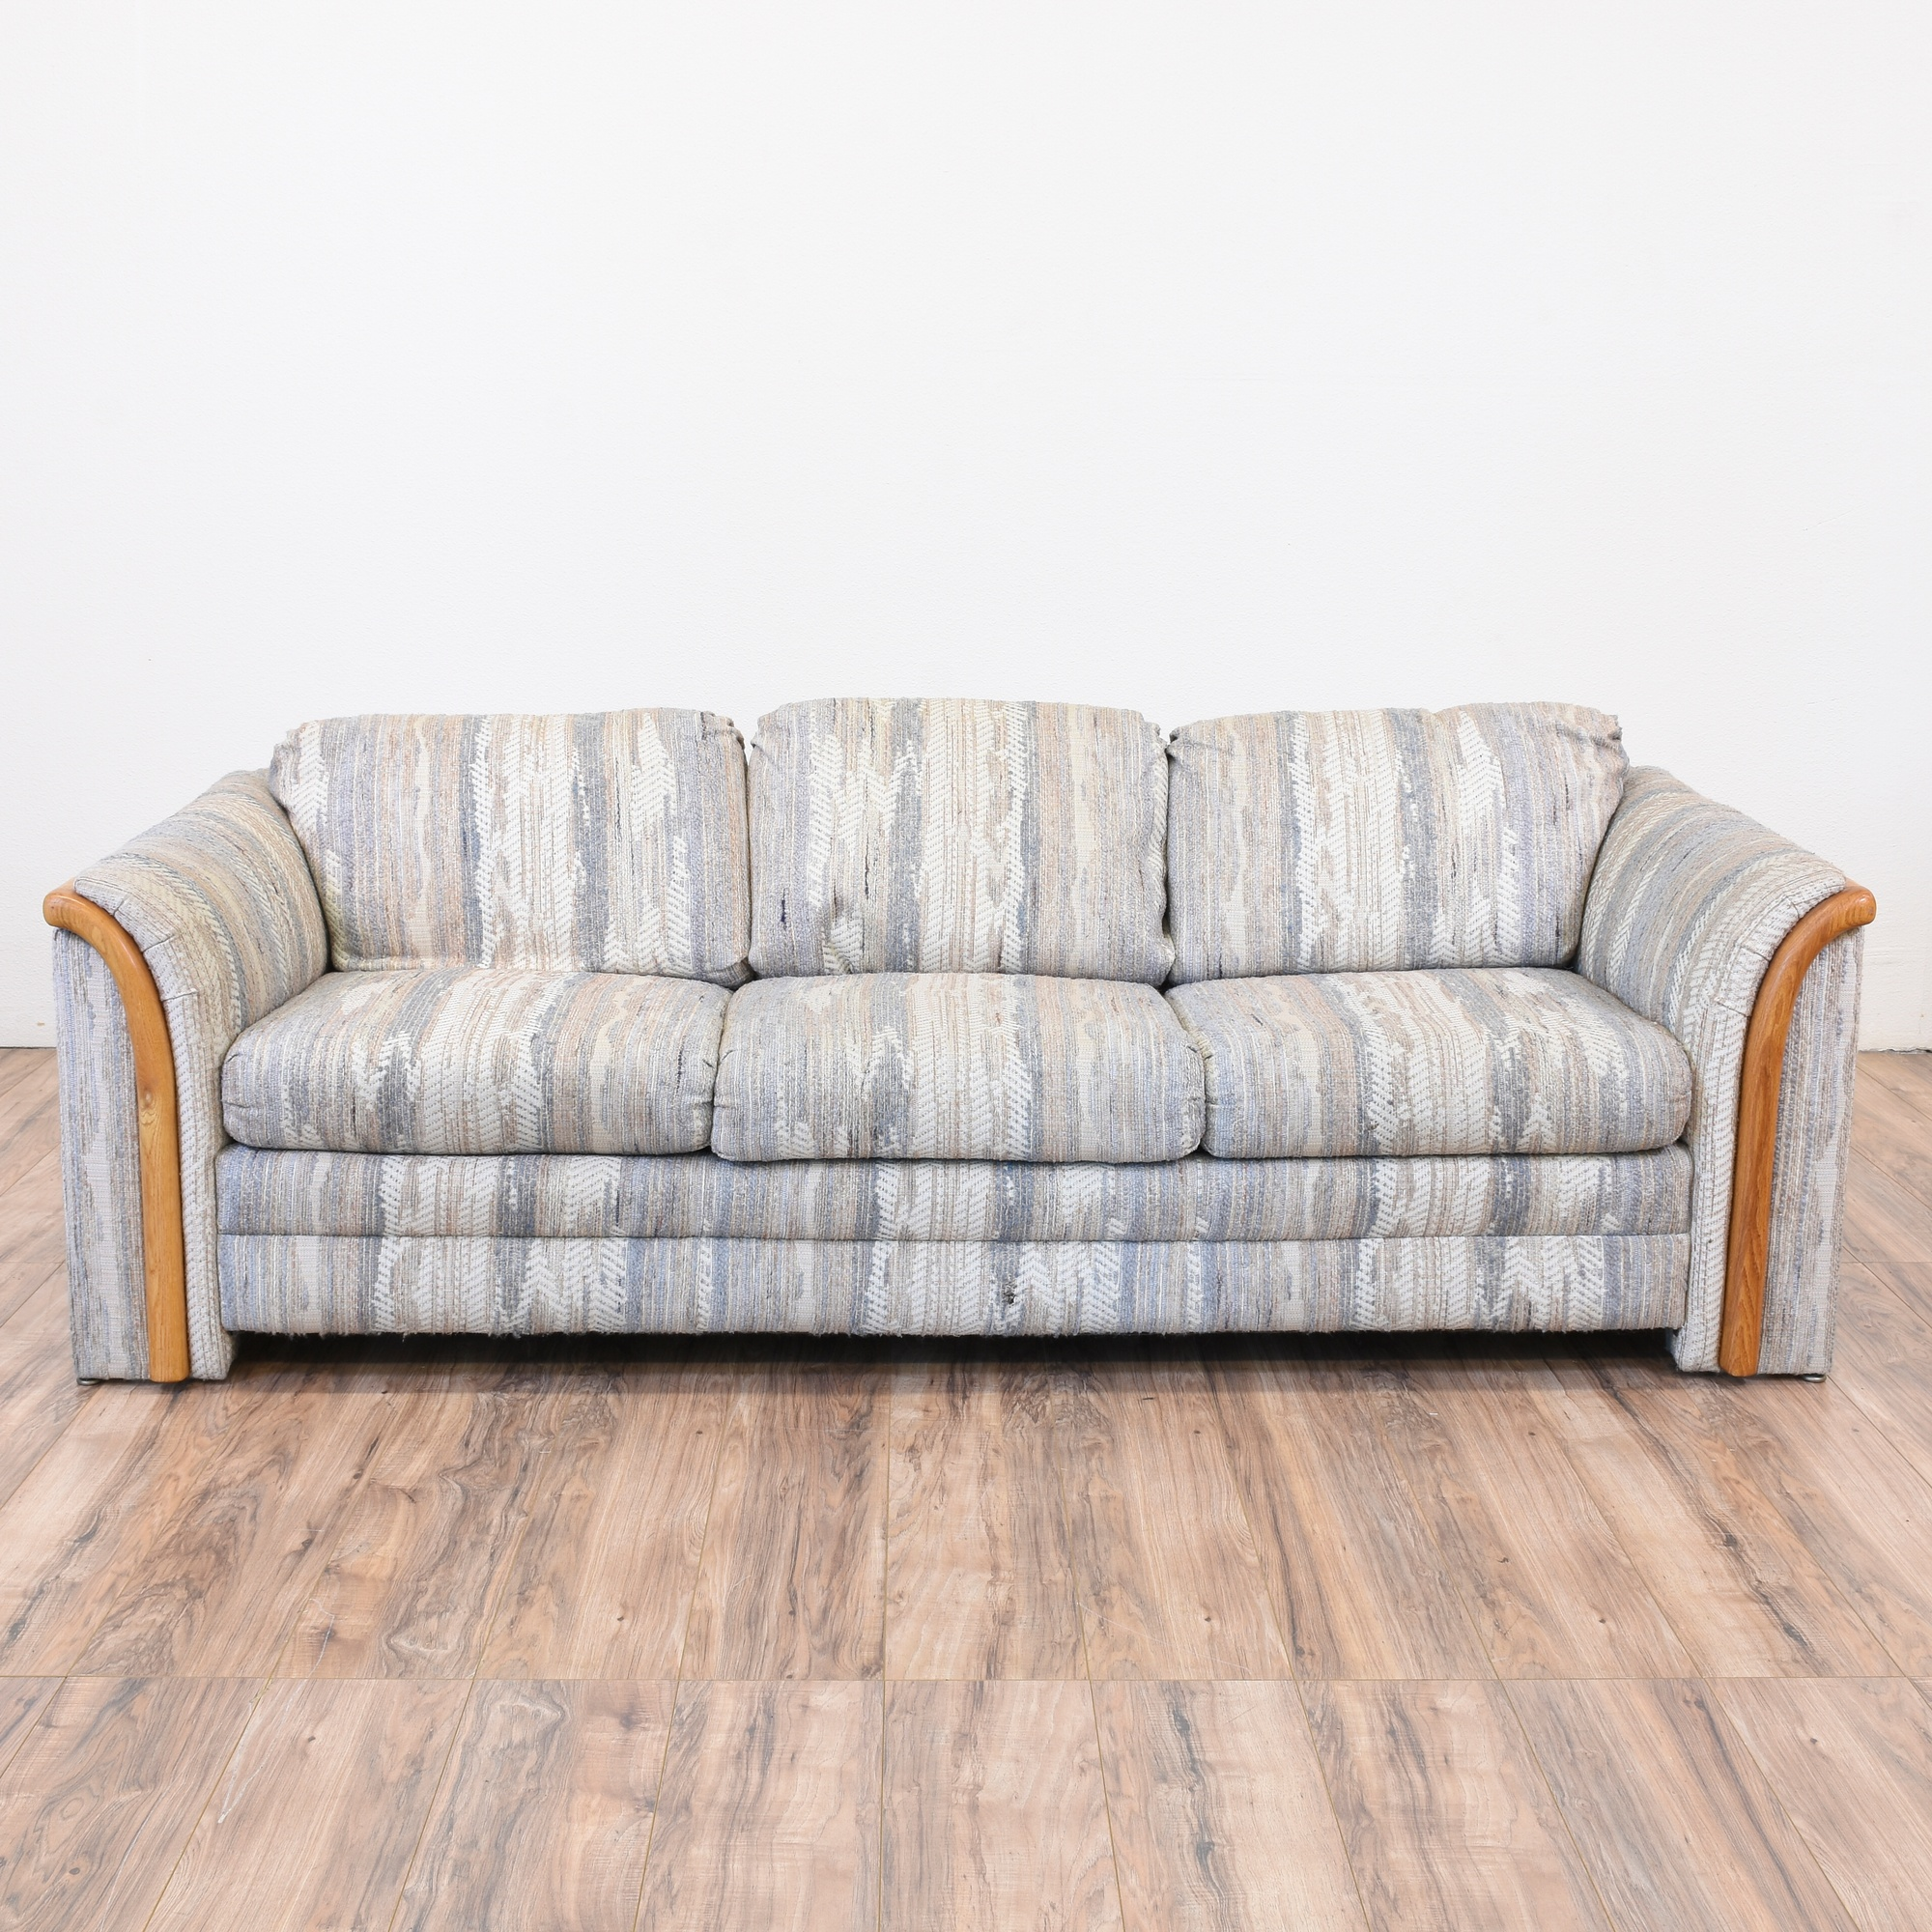 Retro Sofa Wood Retro Abstract Print Sofa In Gray Blue Loveseat Vintage Furniture